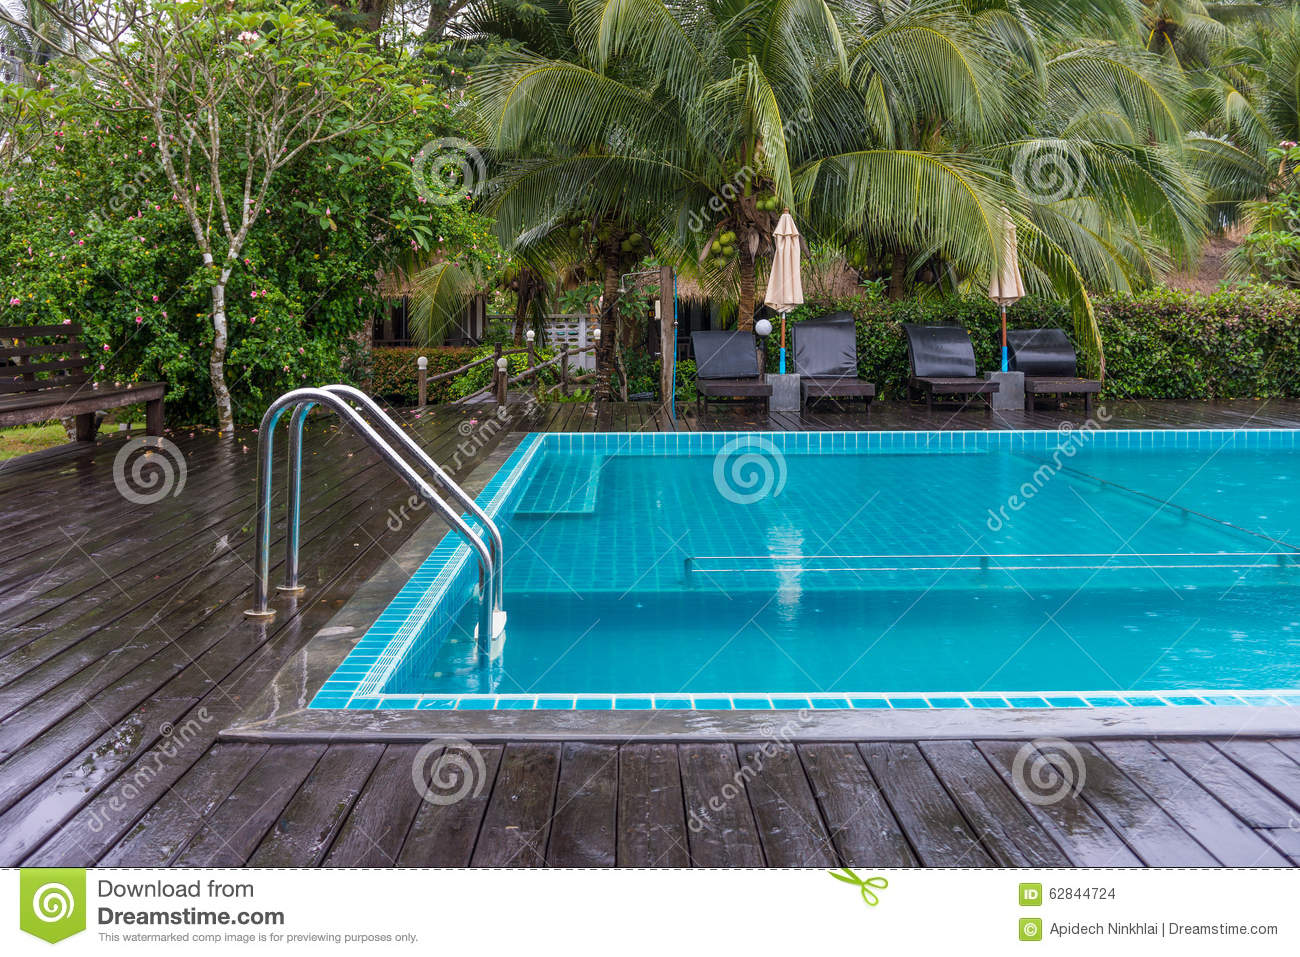 Piscine avec des balustrades photo stock image 62844724 for Piscine destock